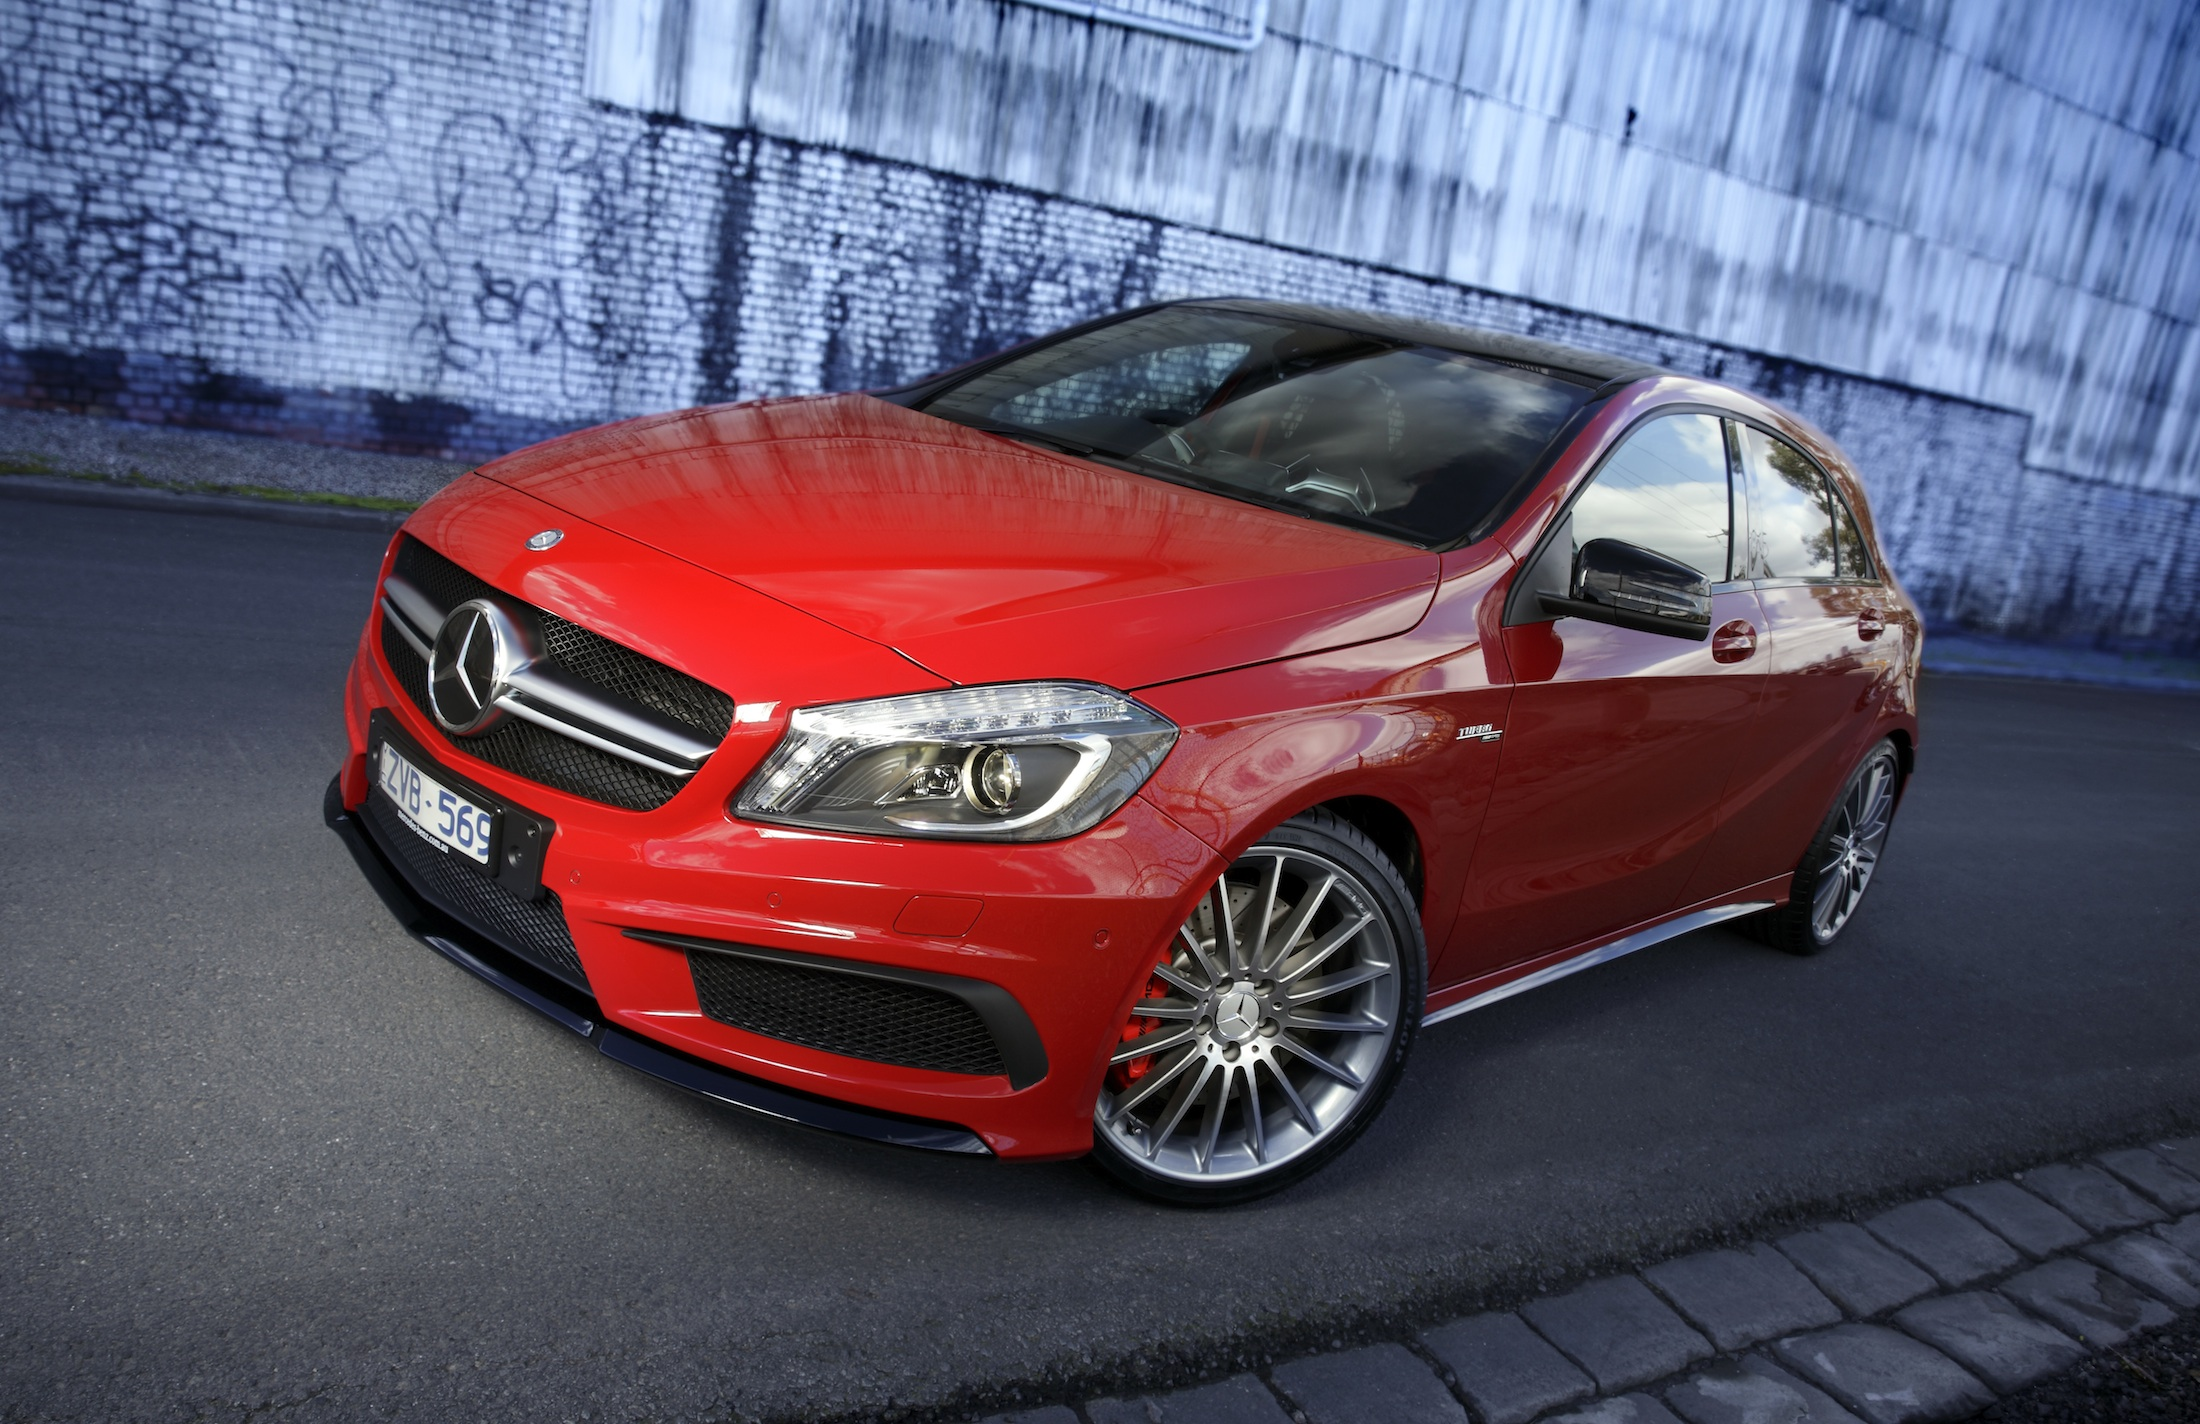 2018 Mercedes Benz A45 AMG photo - 5